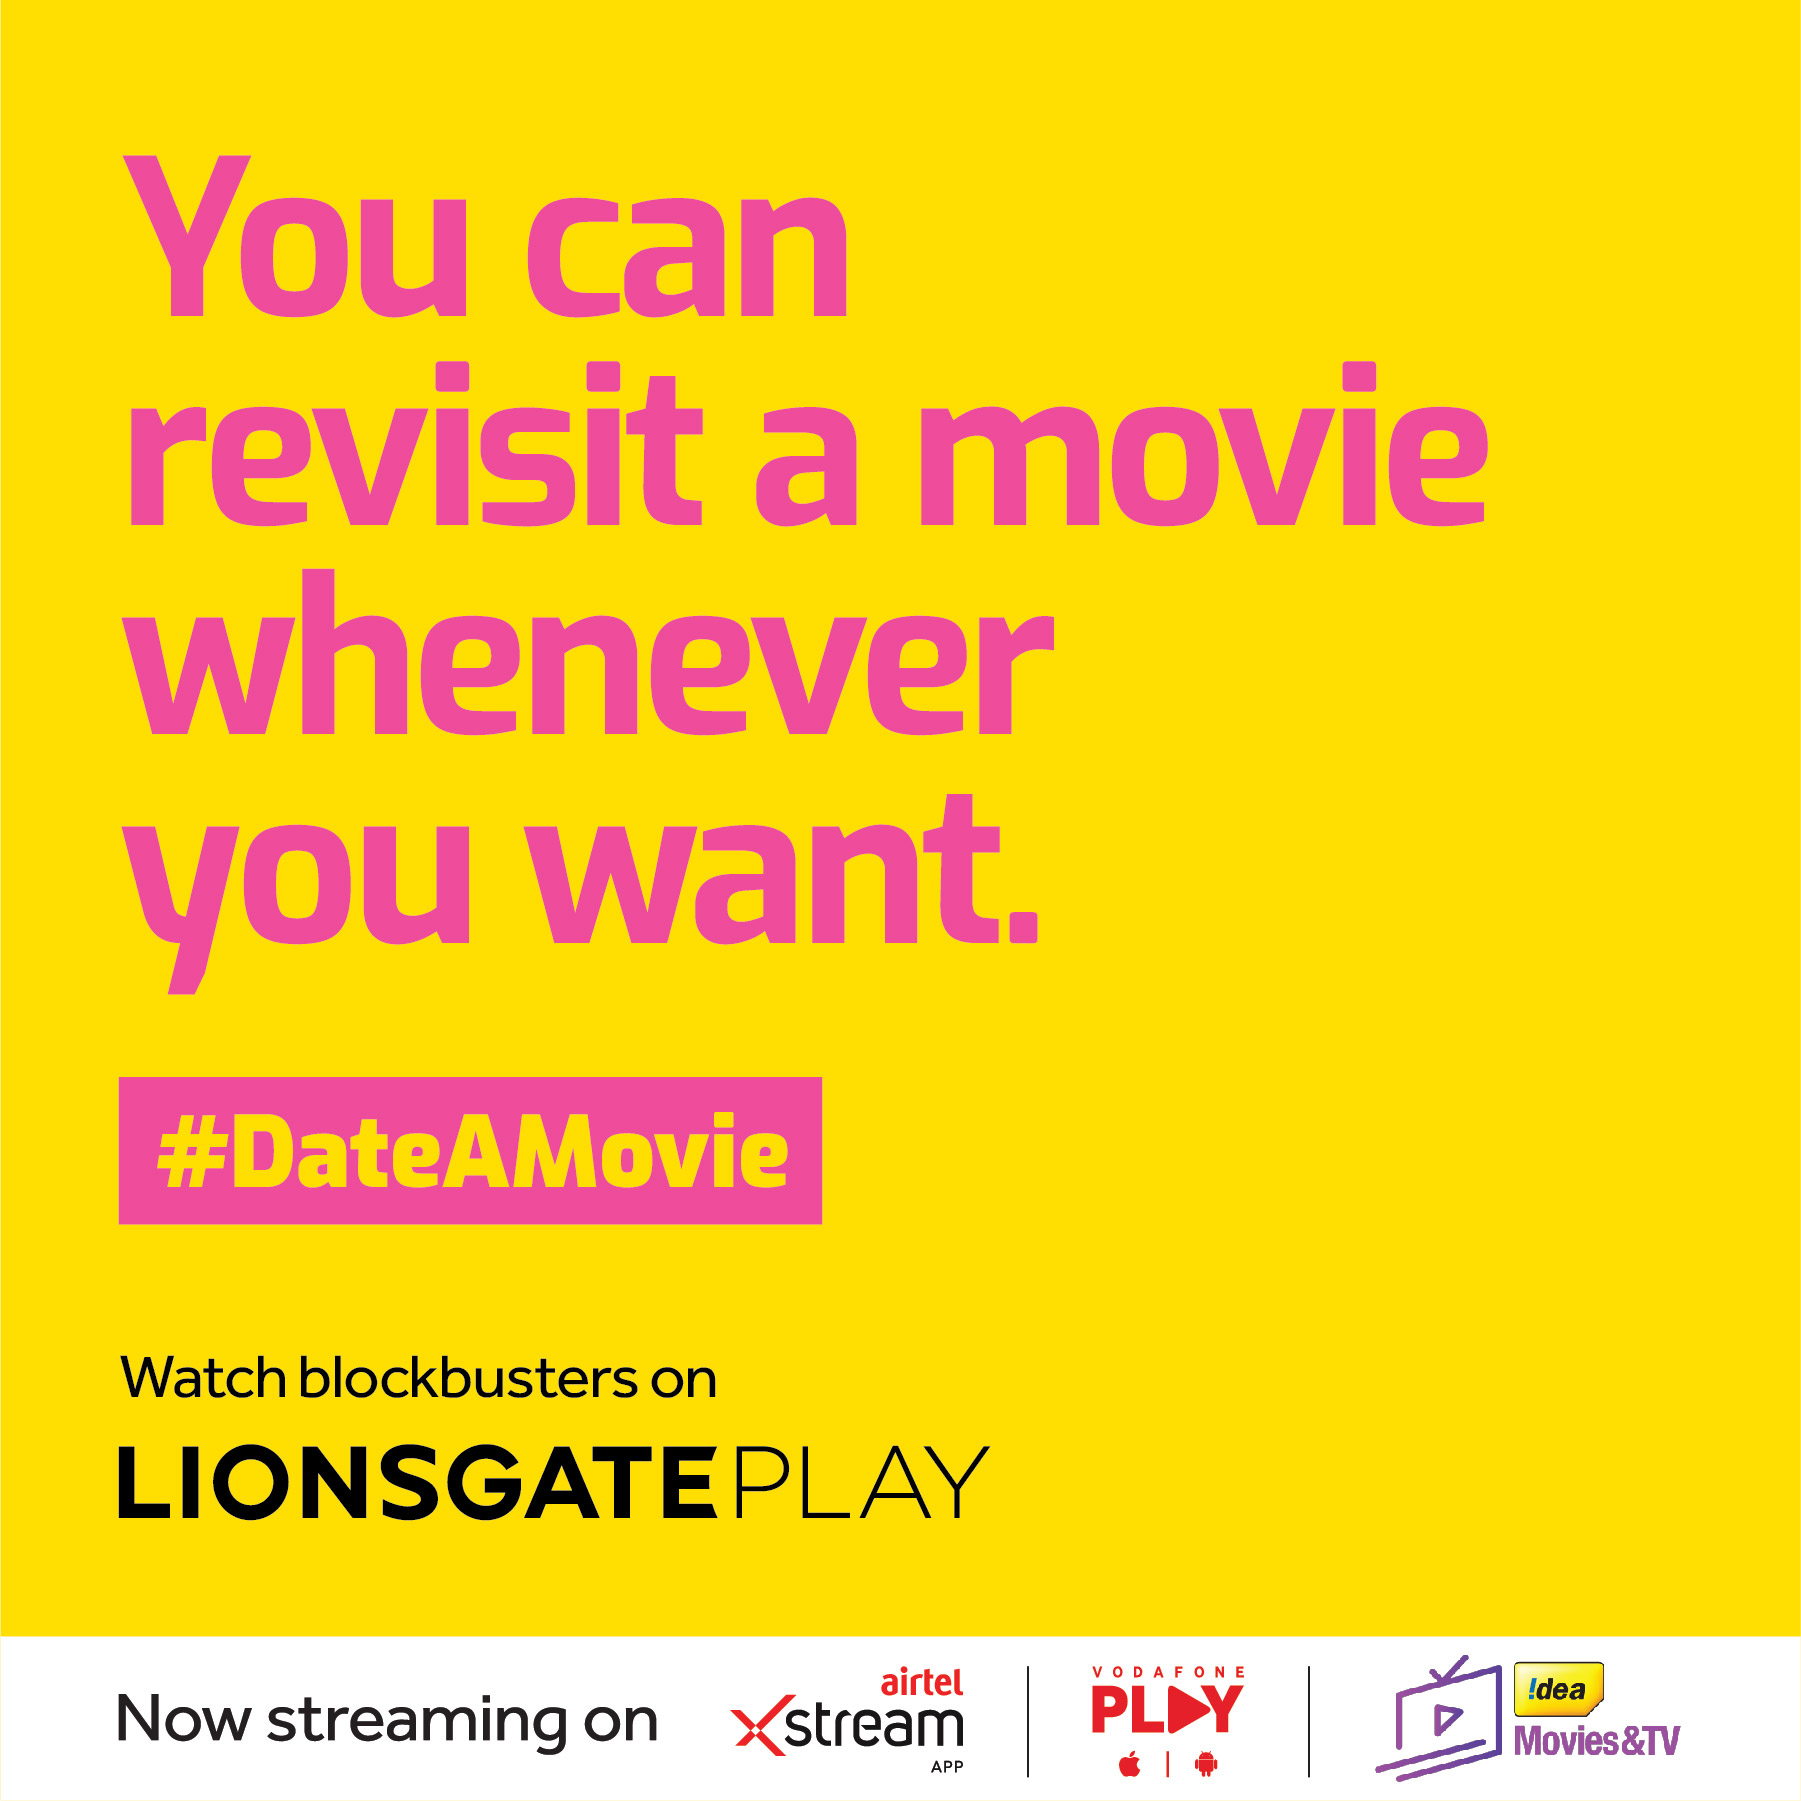 Seen+Noted: Havas India Valentine's Day campaign encourages Lionsgate Play viewers to Date a Movie